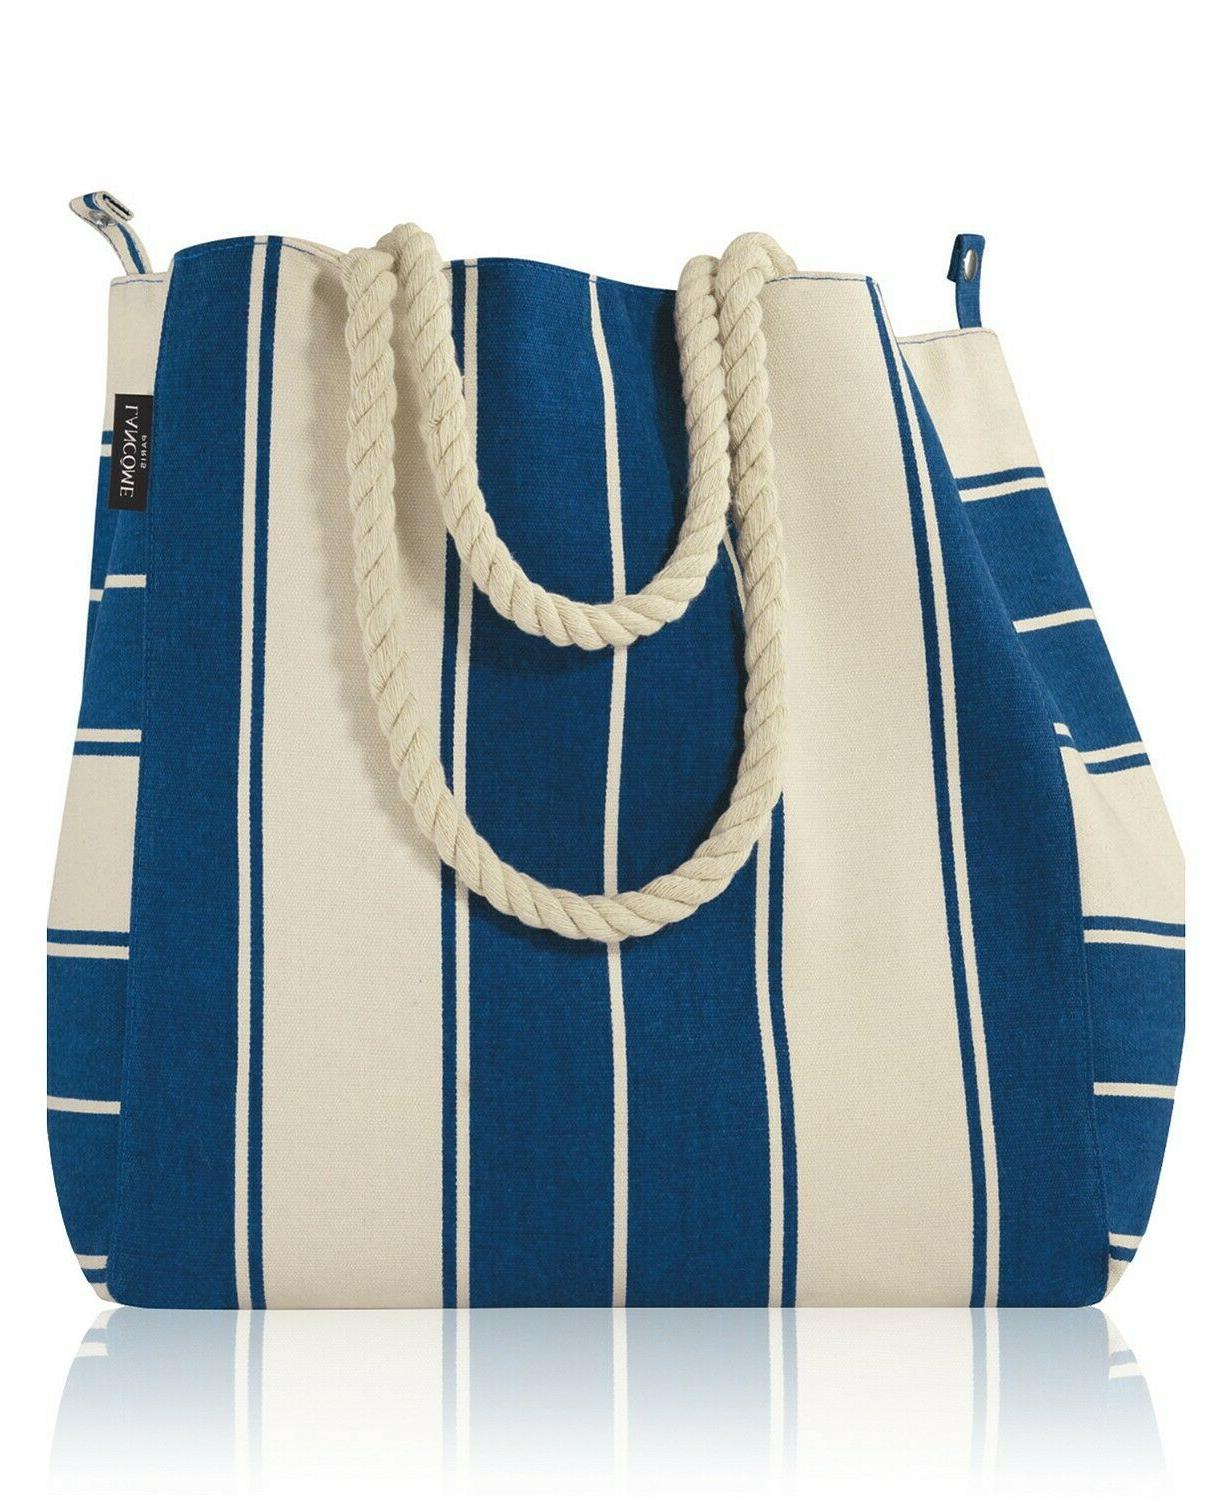 Lot of 10 x Lancome  Blue and White Striped Canvas Summer To